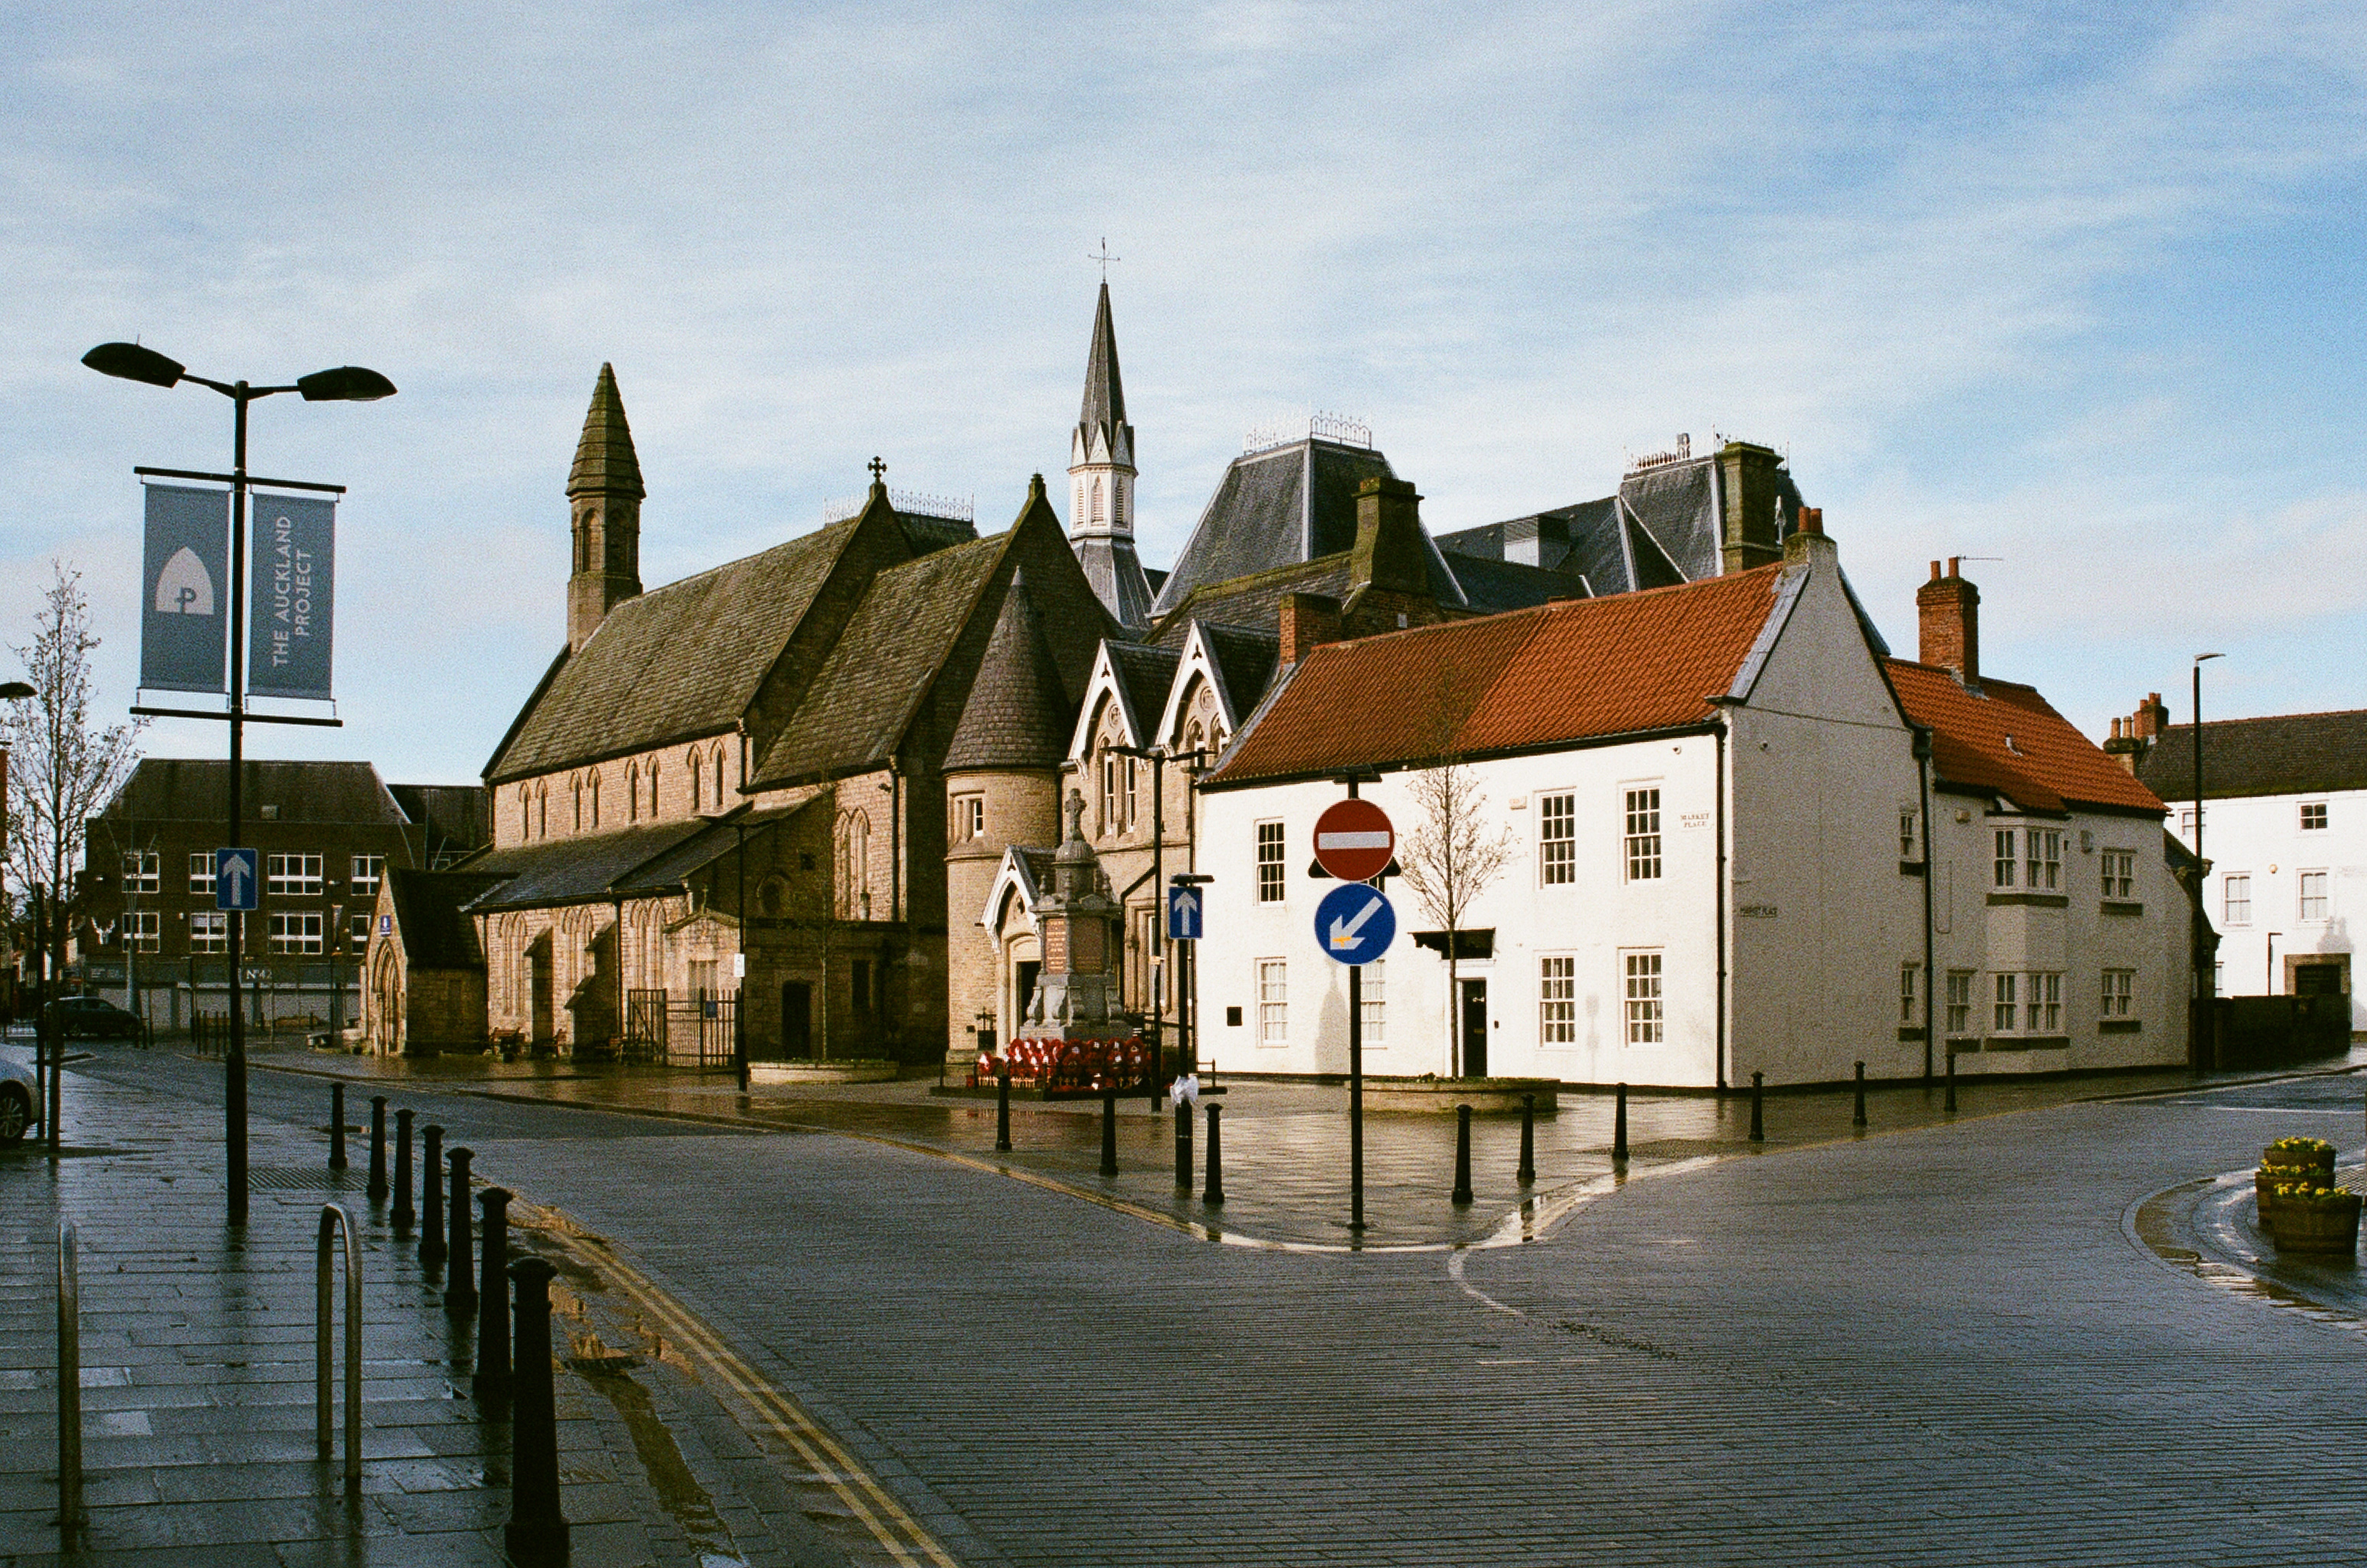 Bishop Auckland on film, February 2020